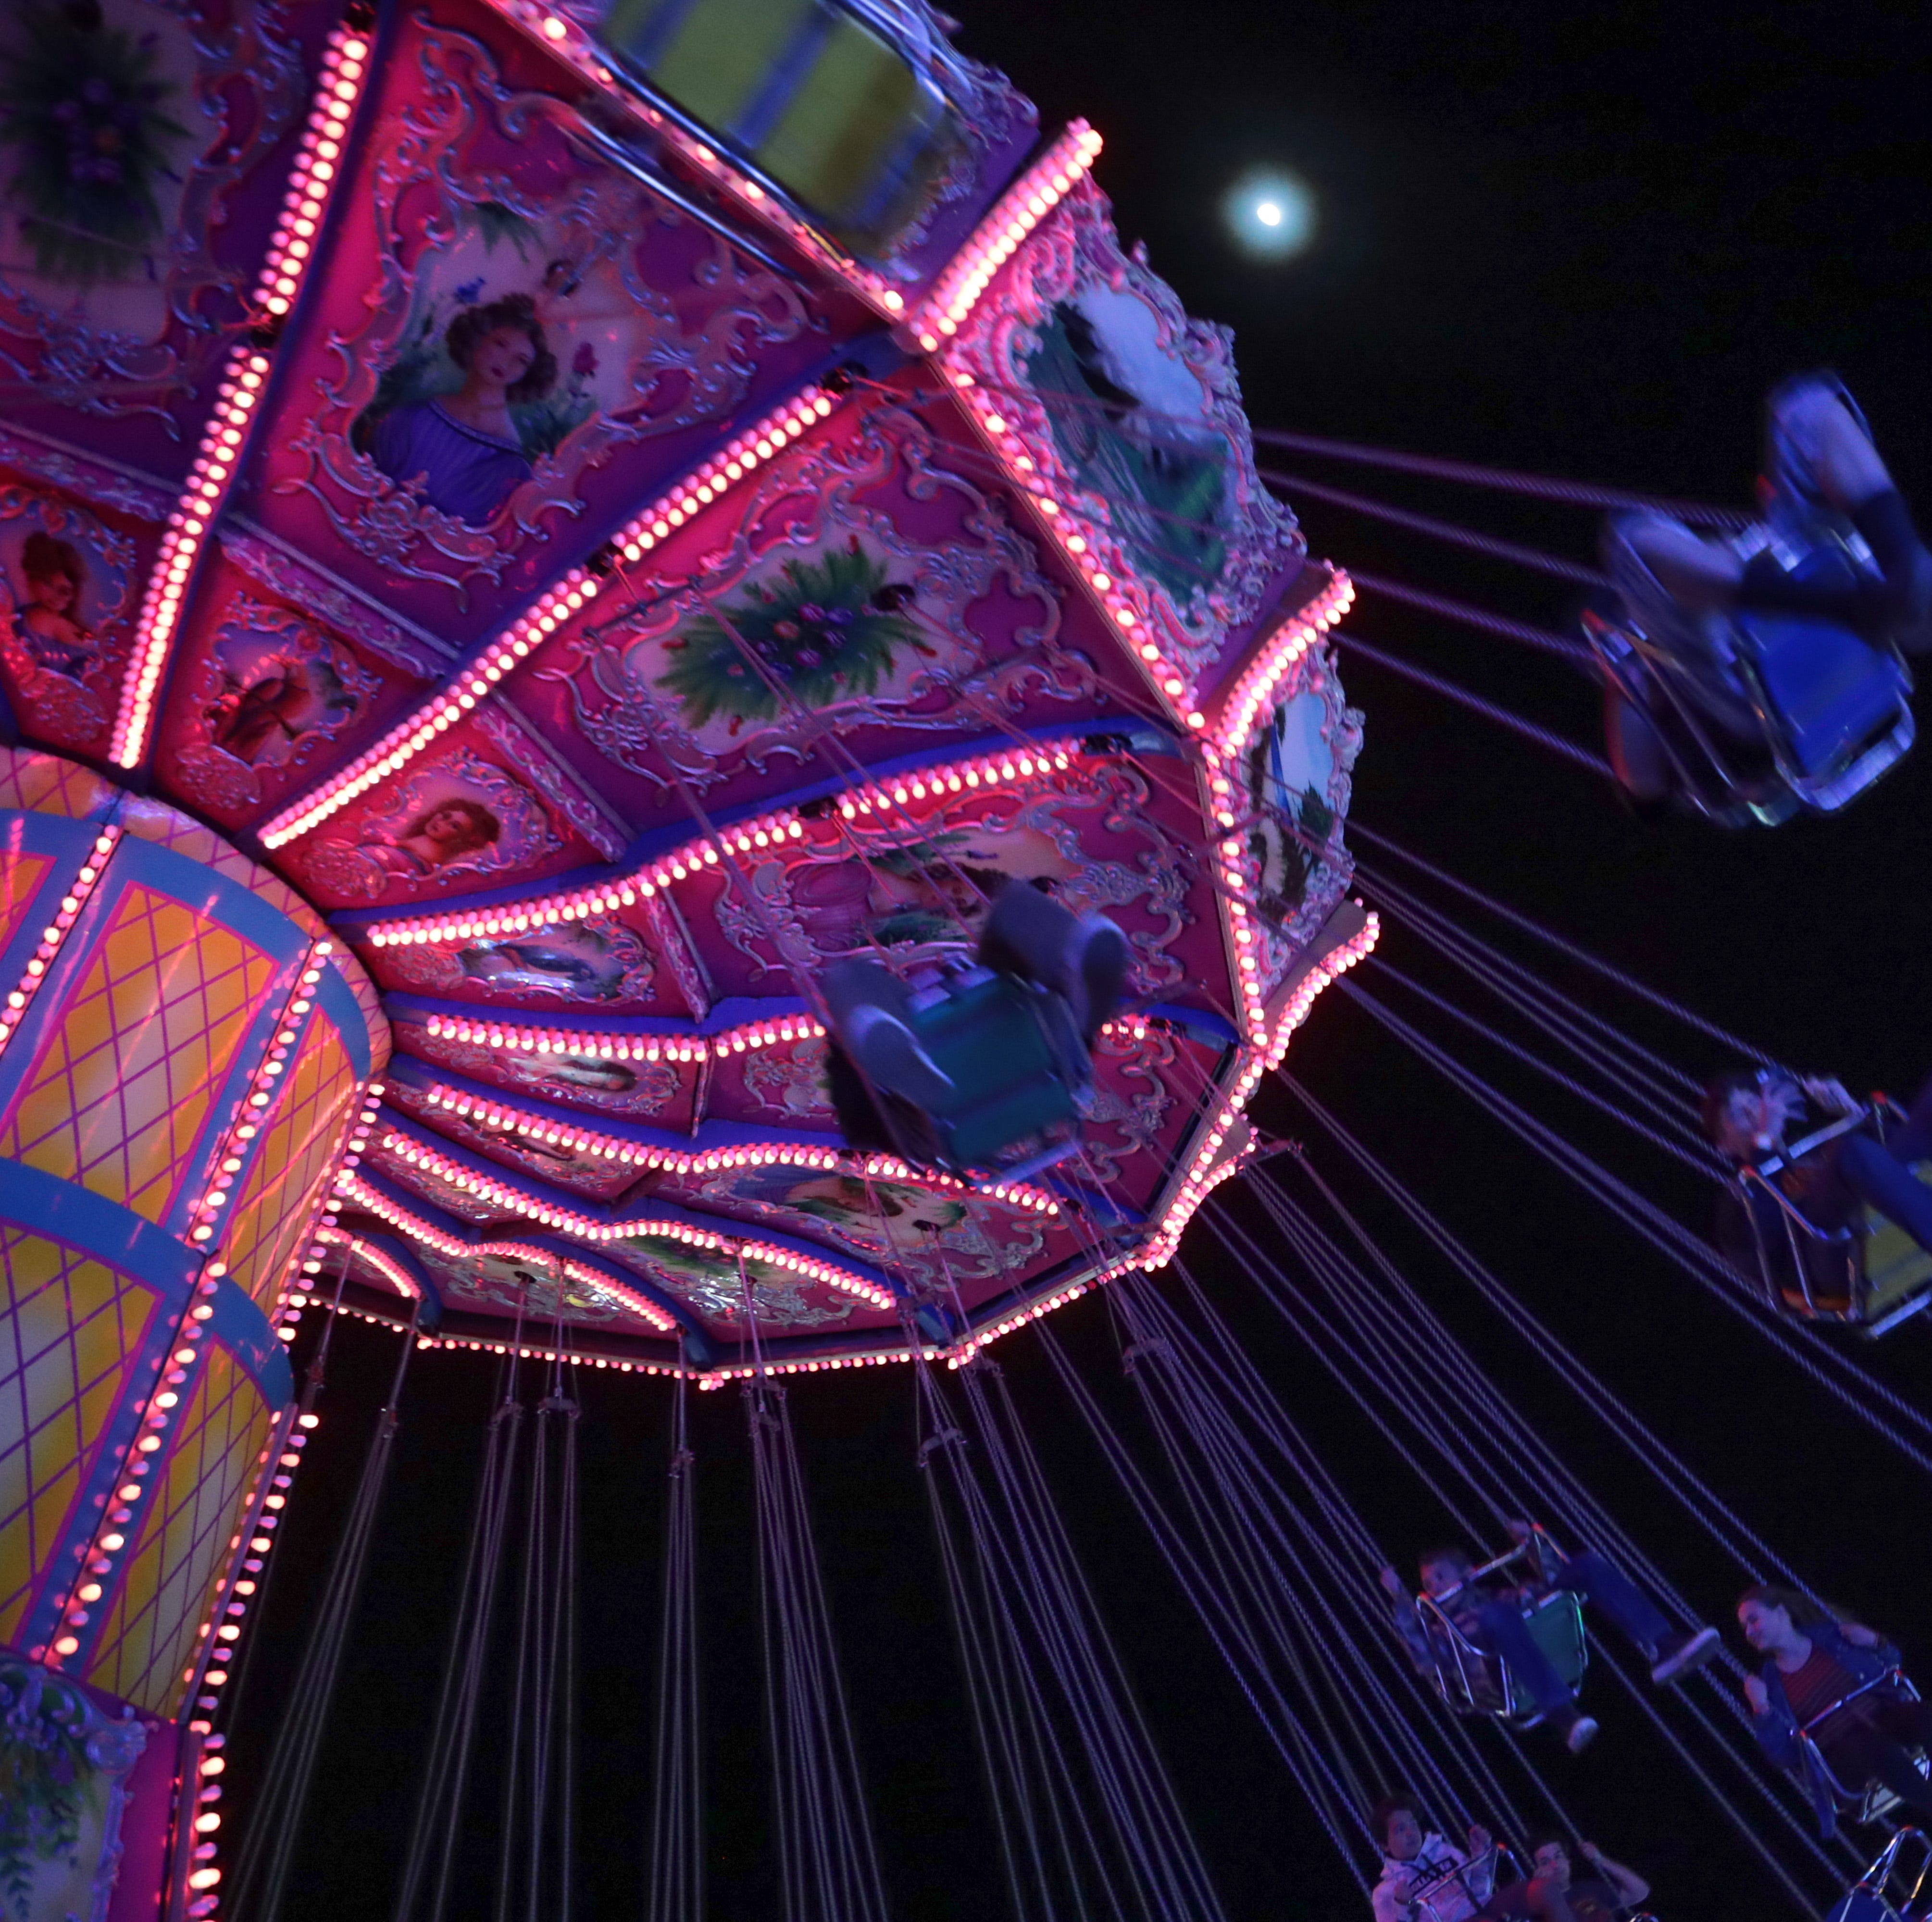 Riverside County Fair & Date Festival: 5 wacky, fun and exciting things to see